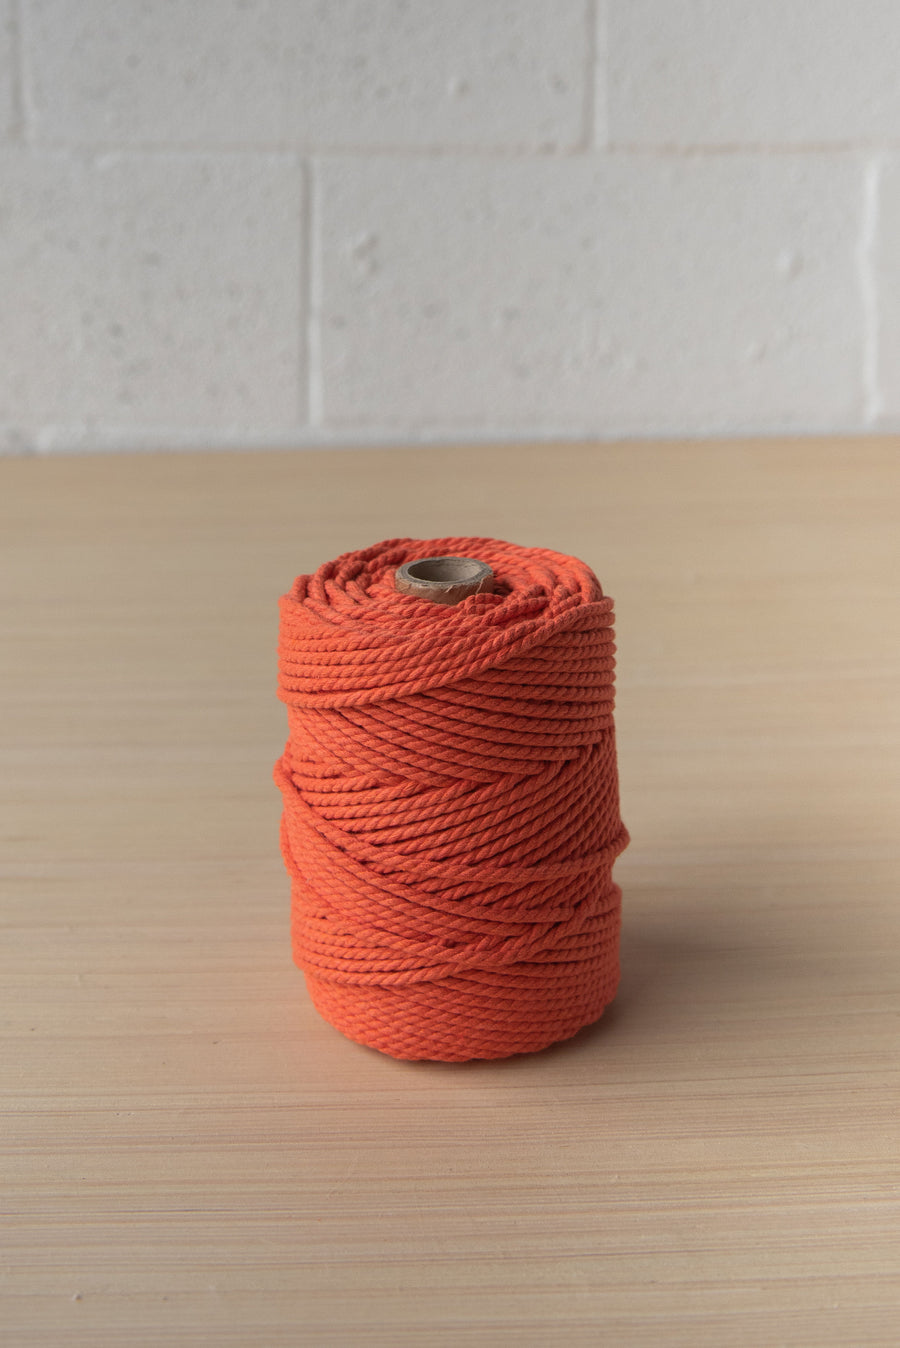 COTTON ROPE 3 MM - 3 PLY - PAPRIKA COLOR